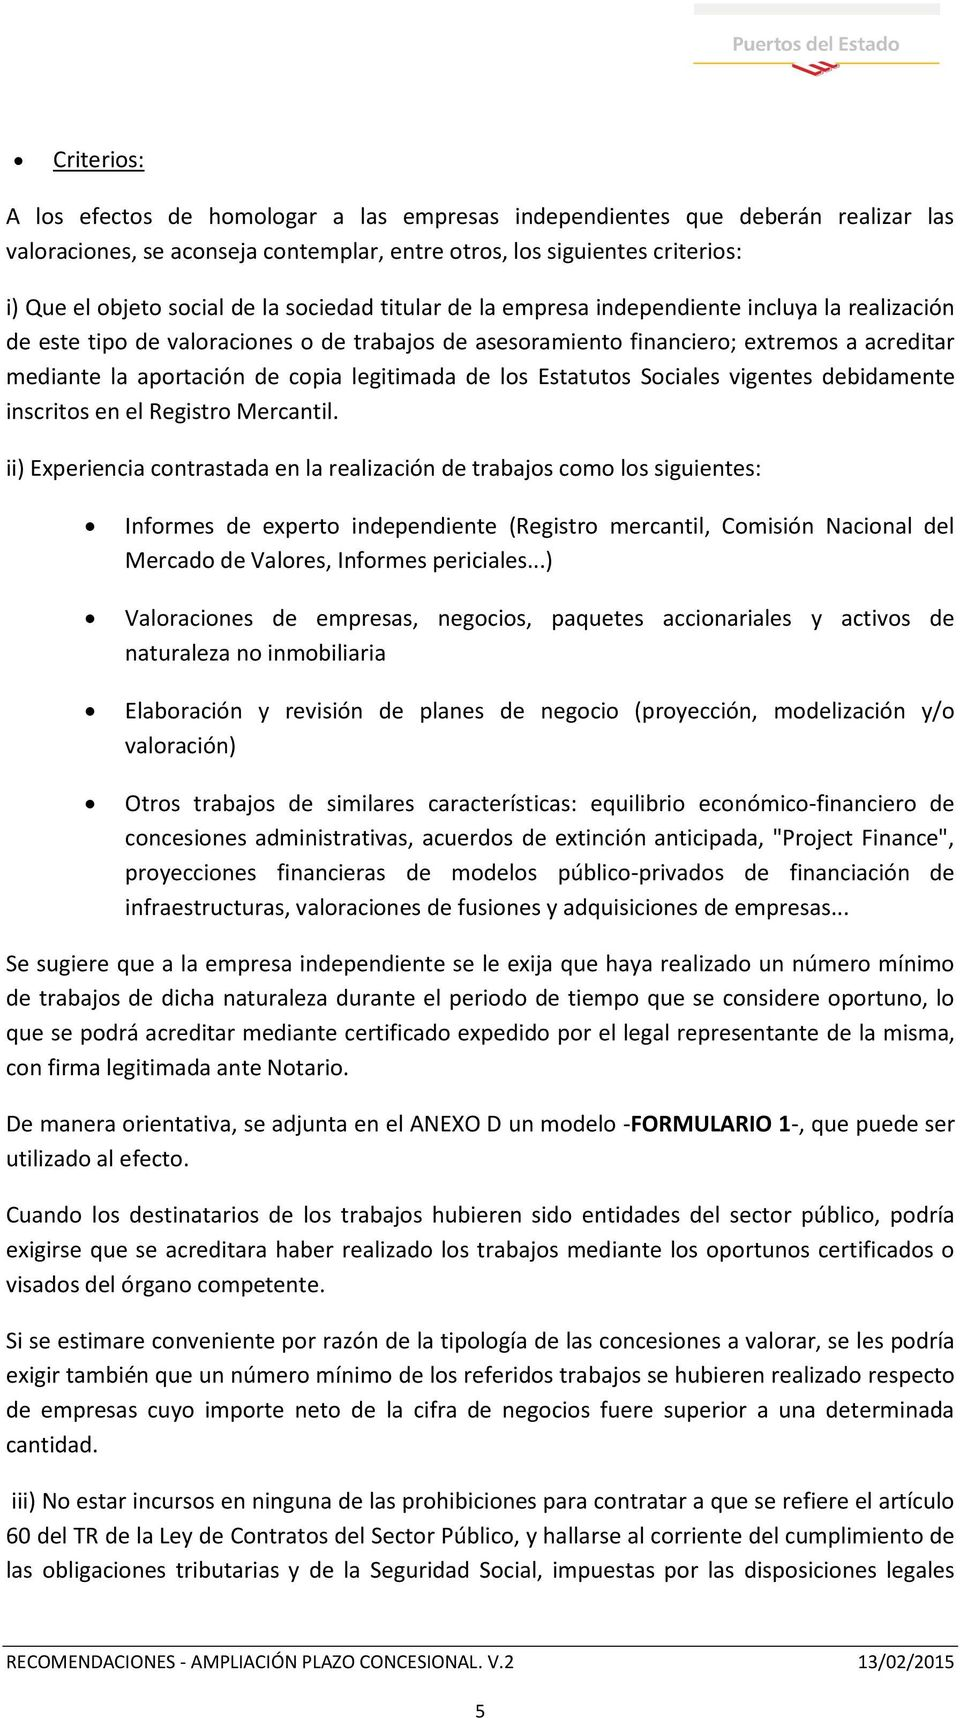 legitimada de los Estatutos Sociales vigentes debidamente inscritos en el Registro Mercantil.